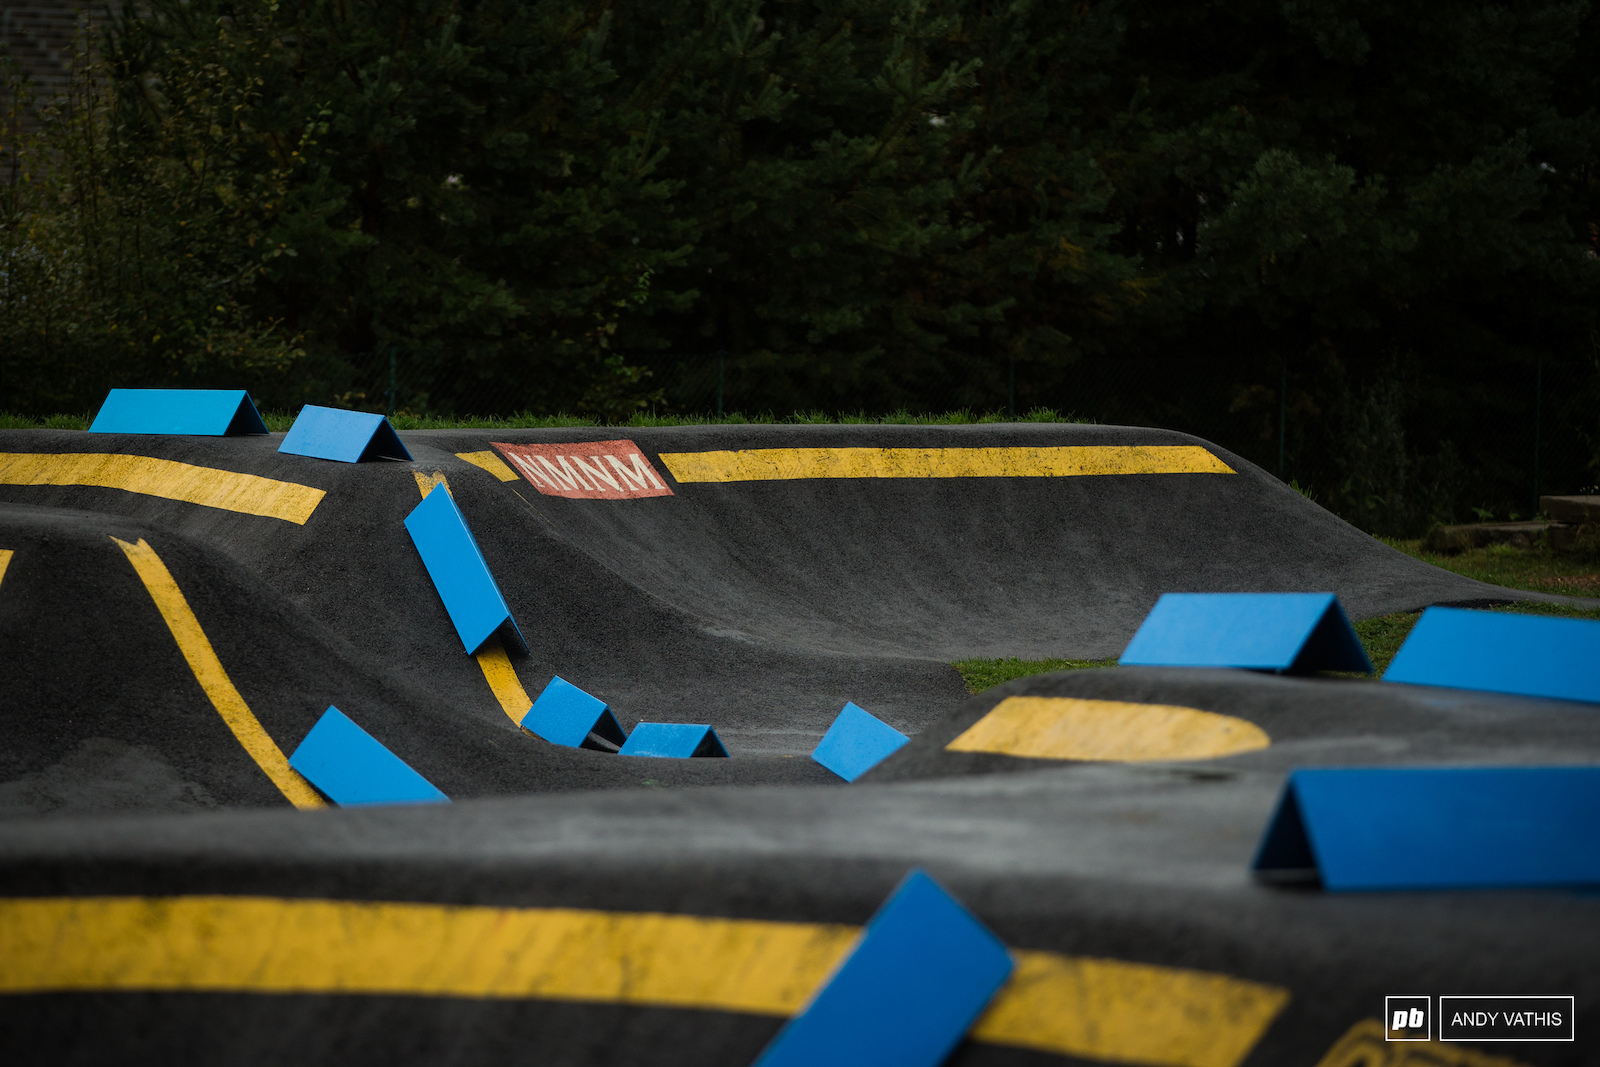 The pumptrack is once again part of the lower section of the course with a slightly different configuration.